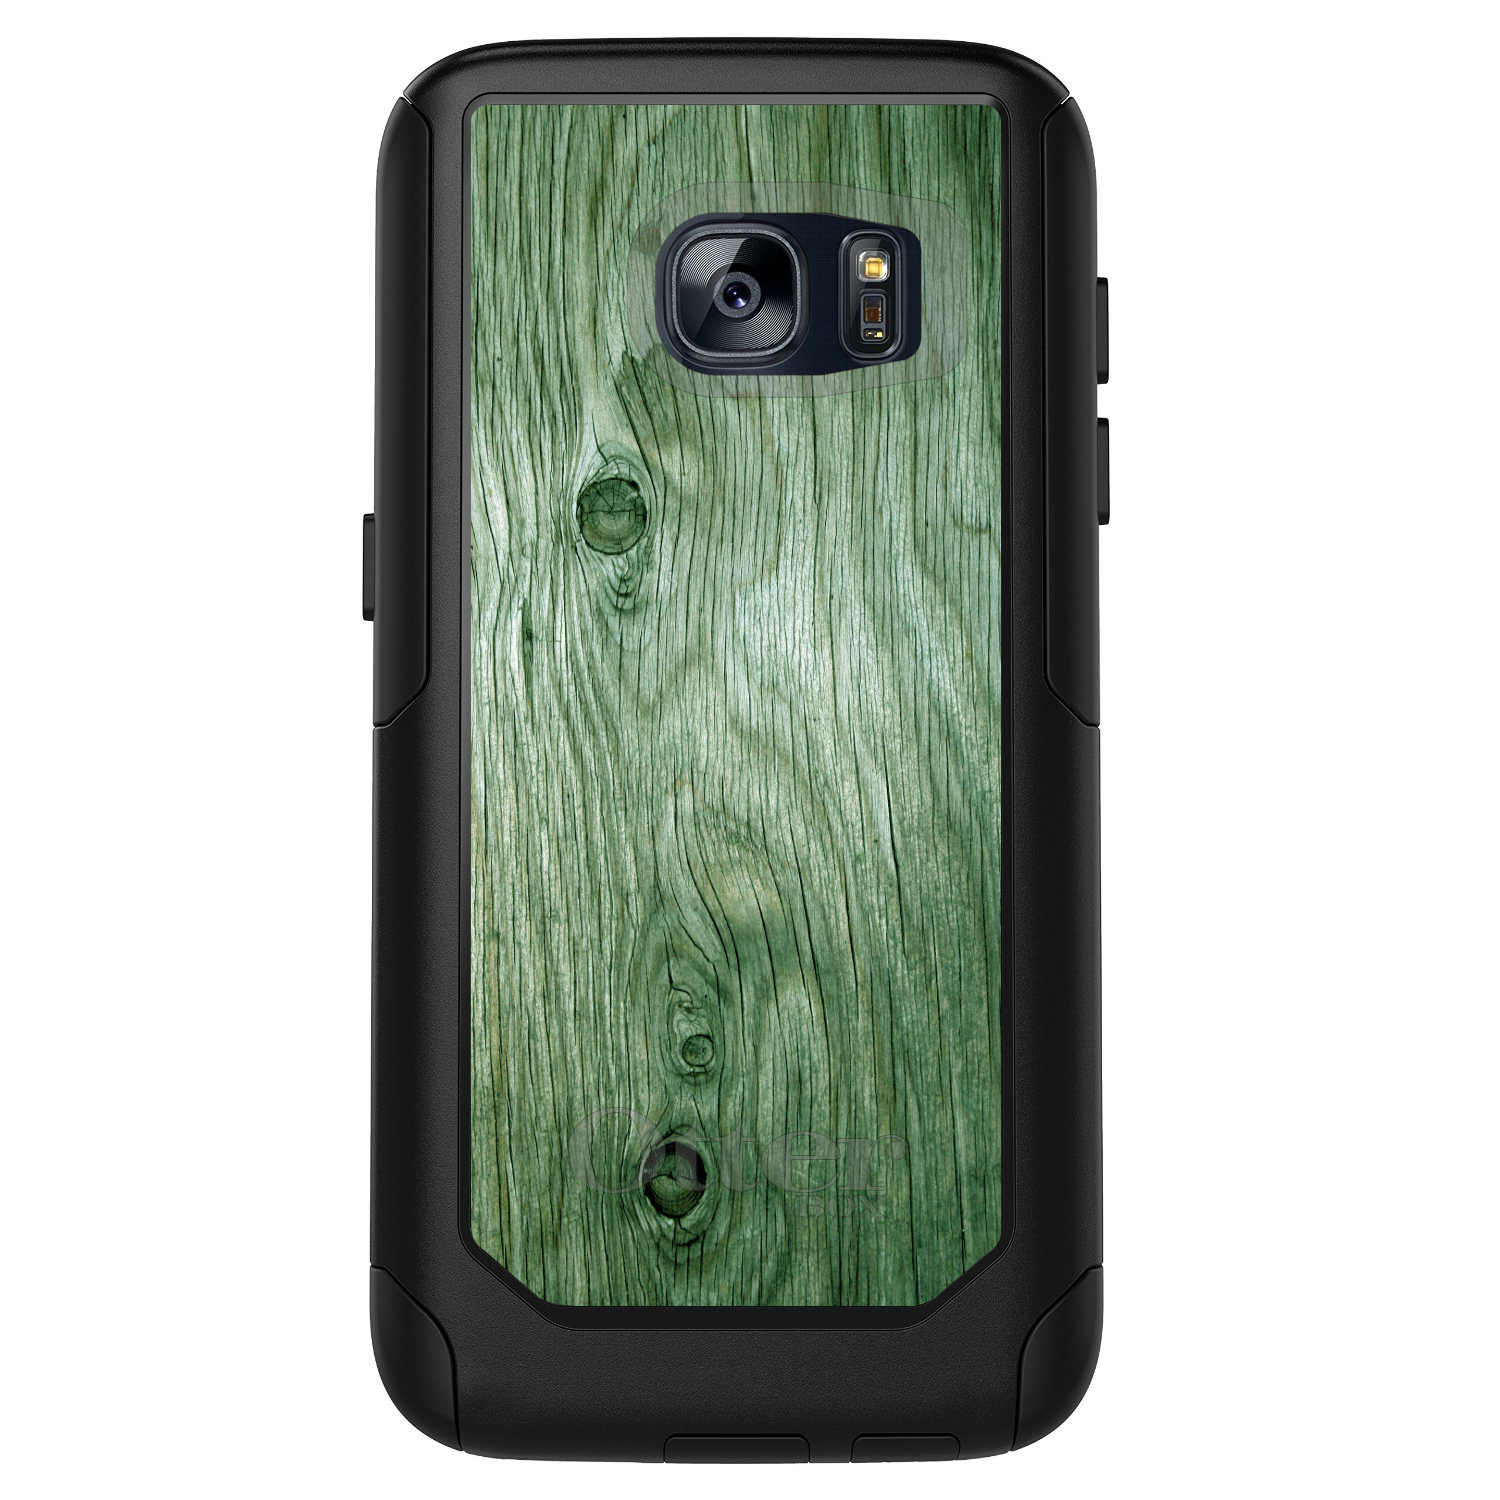 DistinctInk™ Custom Black OtterBox Commuter Series Case for Samsung Galaxy S7 - Green Weathered Wood Grain Print